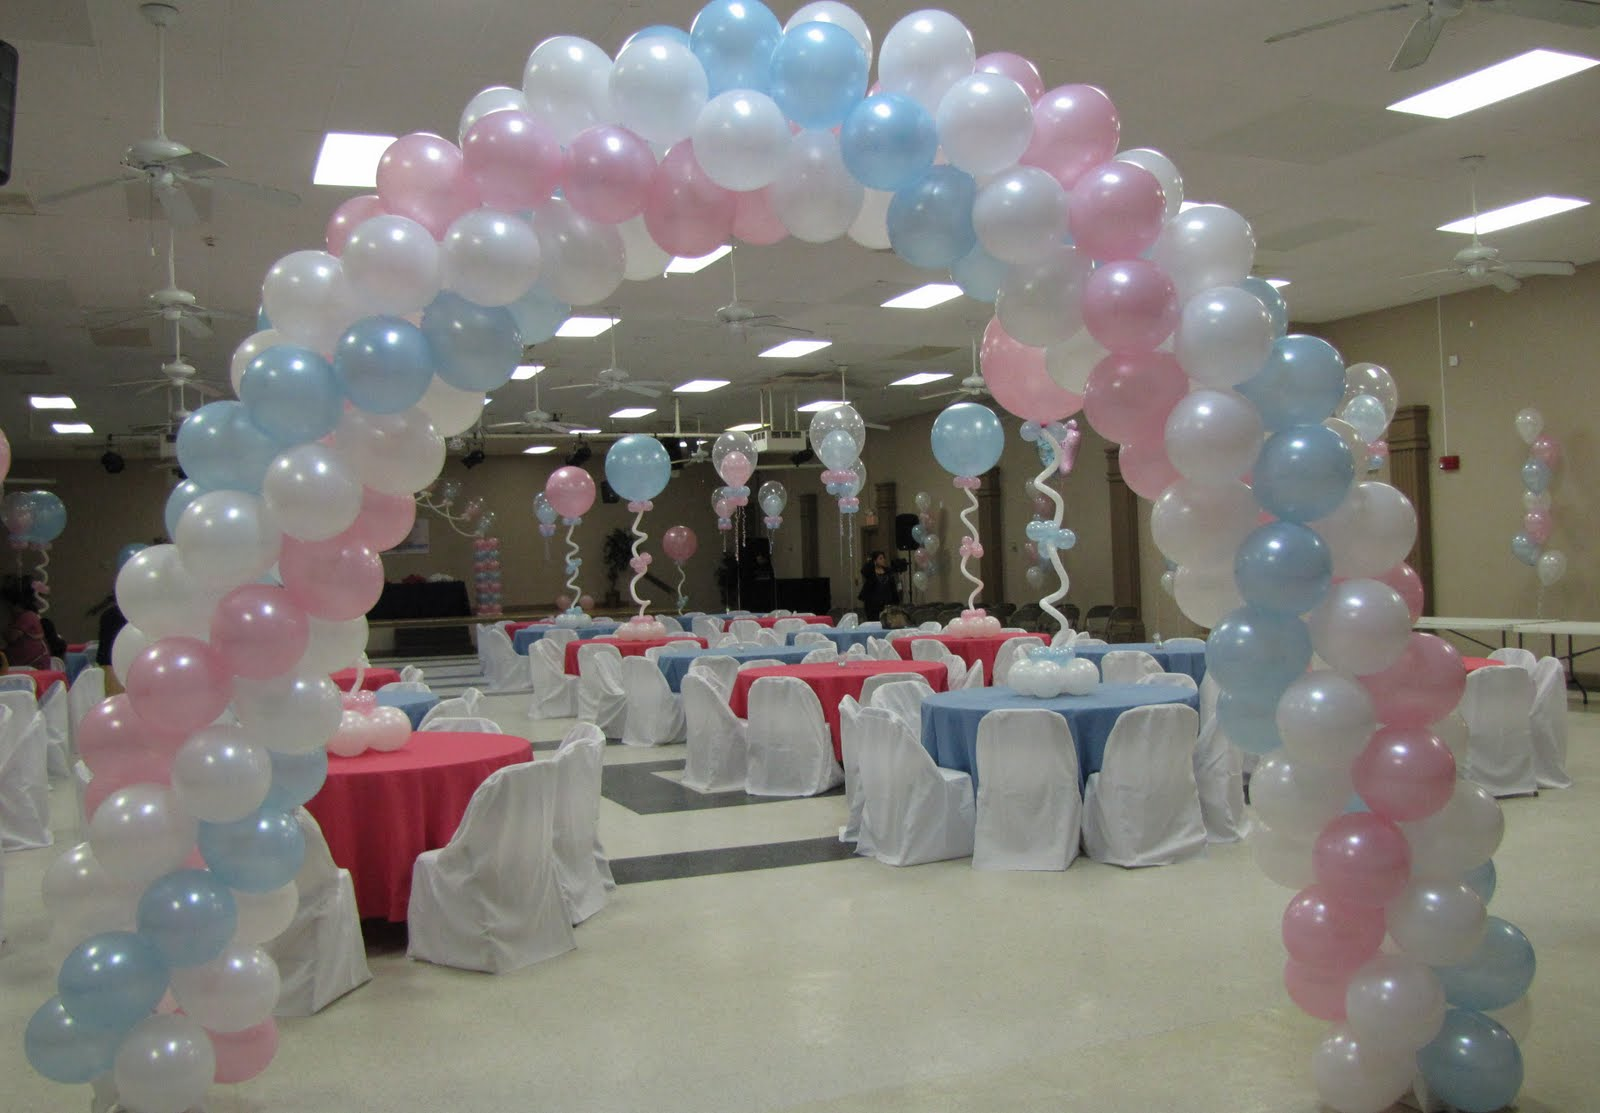 Balloons decorations for baby shower party favors ideas for Baby shower at home decorations